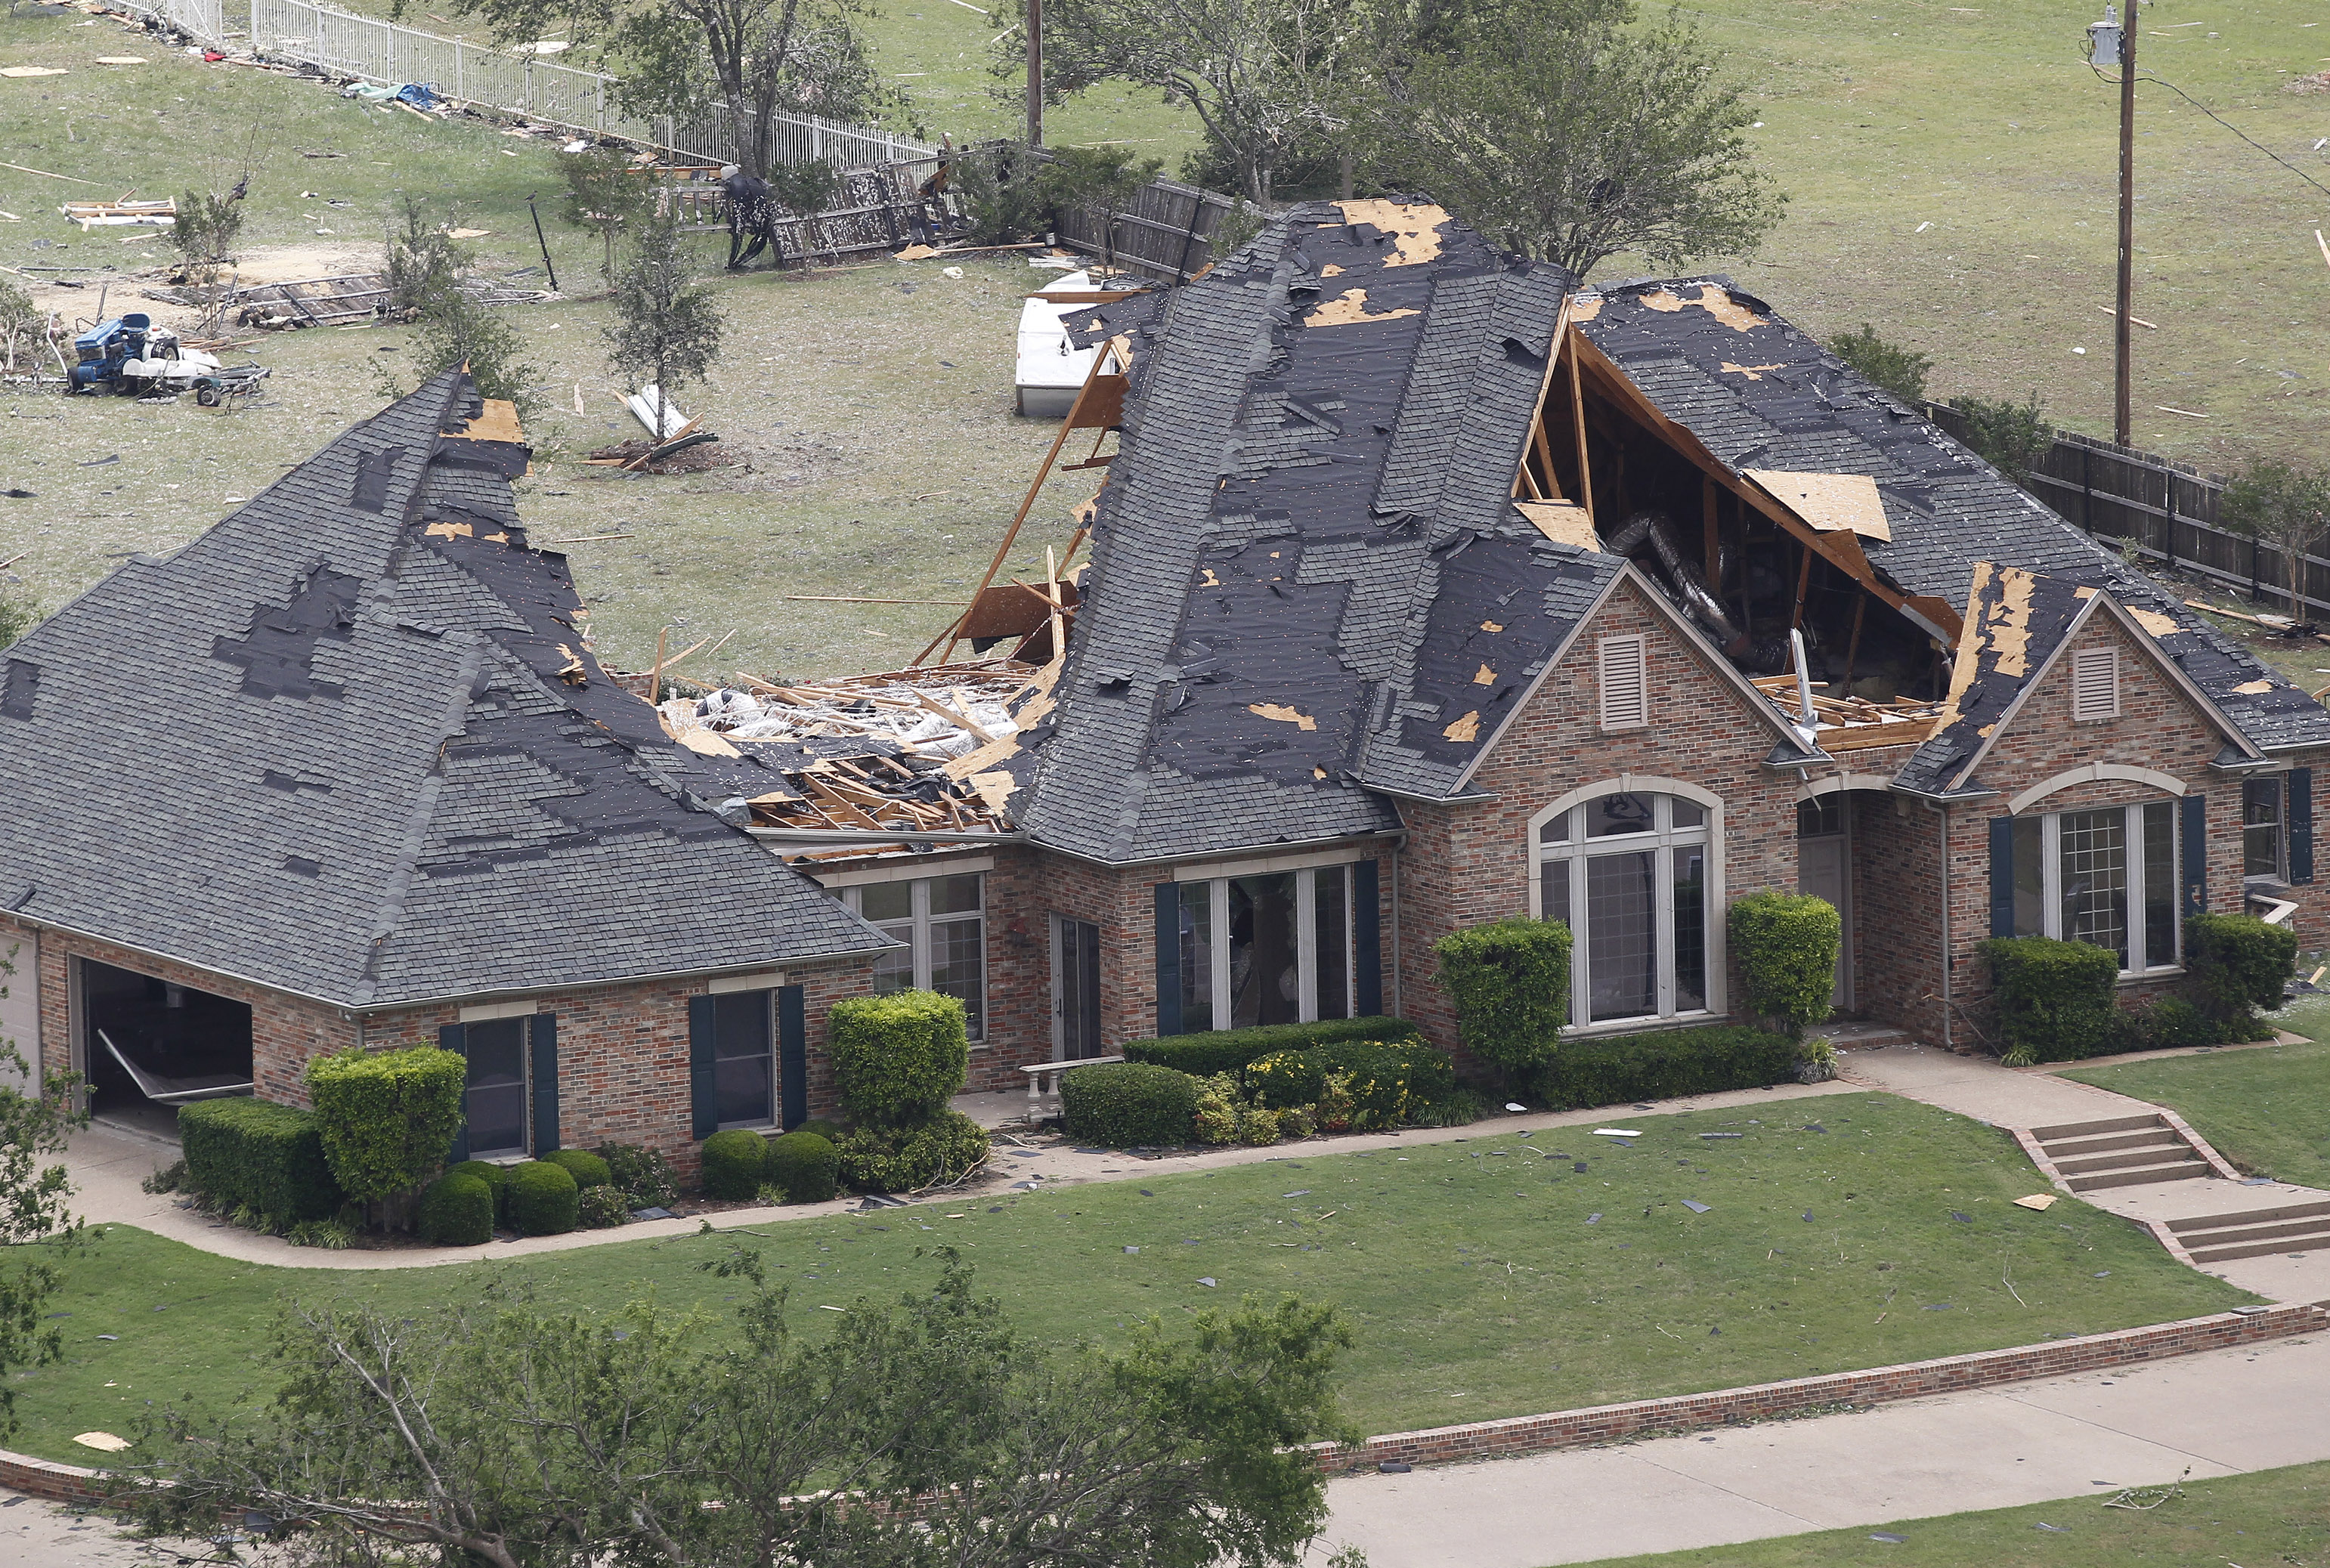 Groovy Habitat Homes Hit By Tornadoes The Spokesman Review Home Interior And Landscaping Oversignezvosmurscom